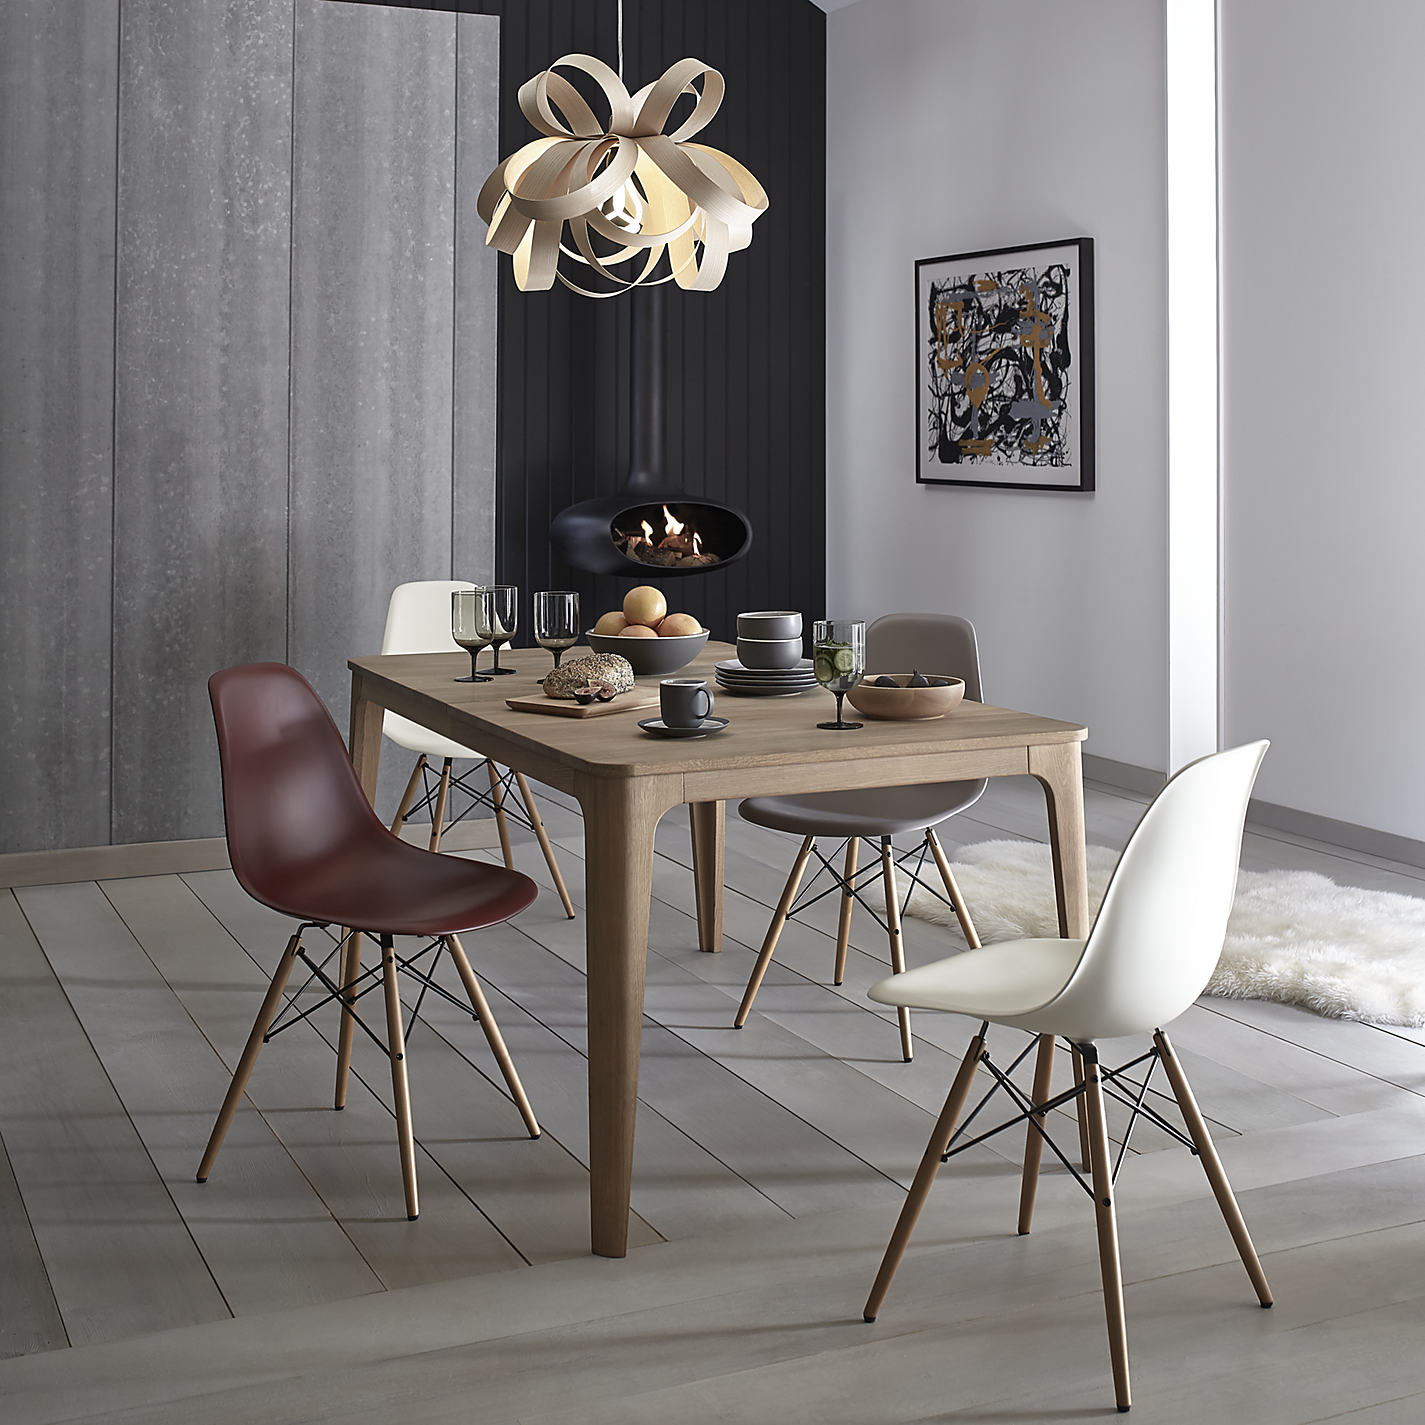 Buy Ebbe Gehl for John Lewis Mira 4 8 Seater Extending Dining Table  Online at  Buy Ebbe Gehl for John Lewis Mira 4 8 Seater Extending Dining  . Seat Pads For Dining Chairs John Lewis. Home Design Ideas